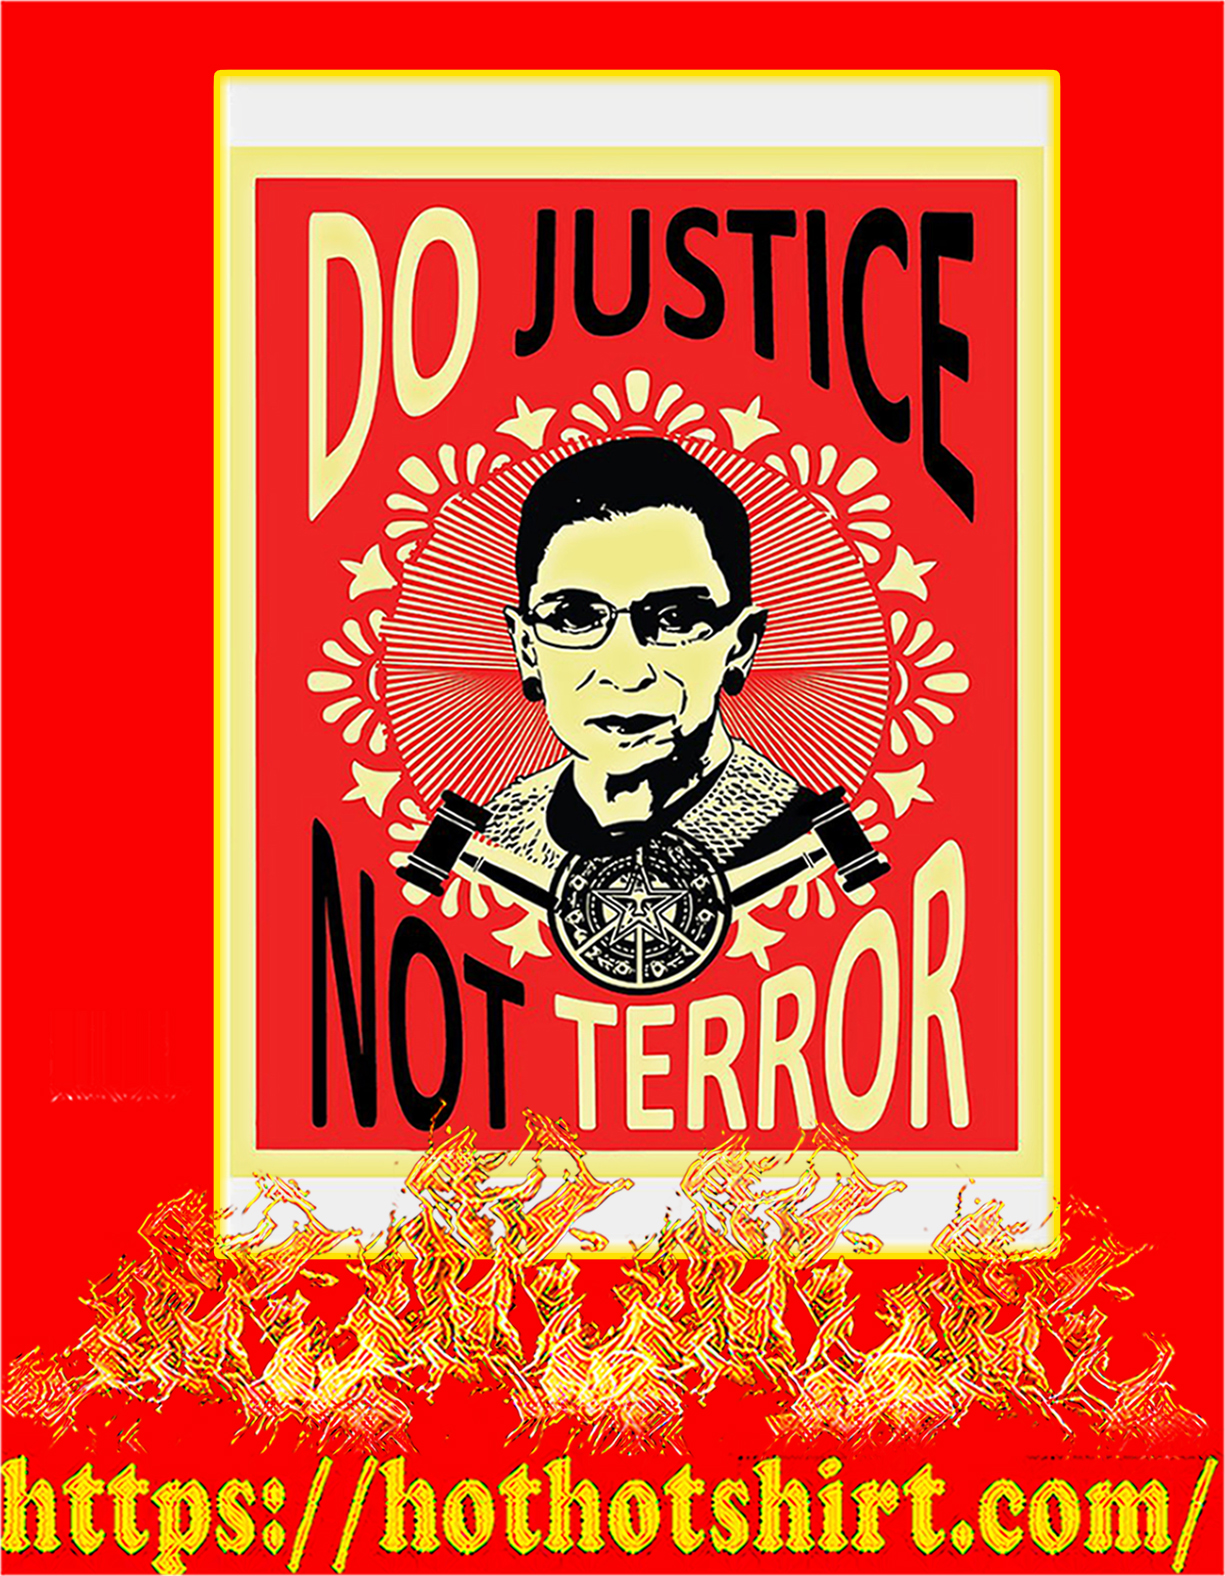 Do justice not terror Ruth bader ginsburg poster - A4